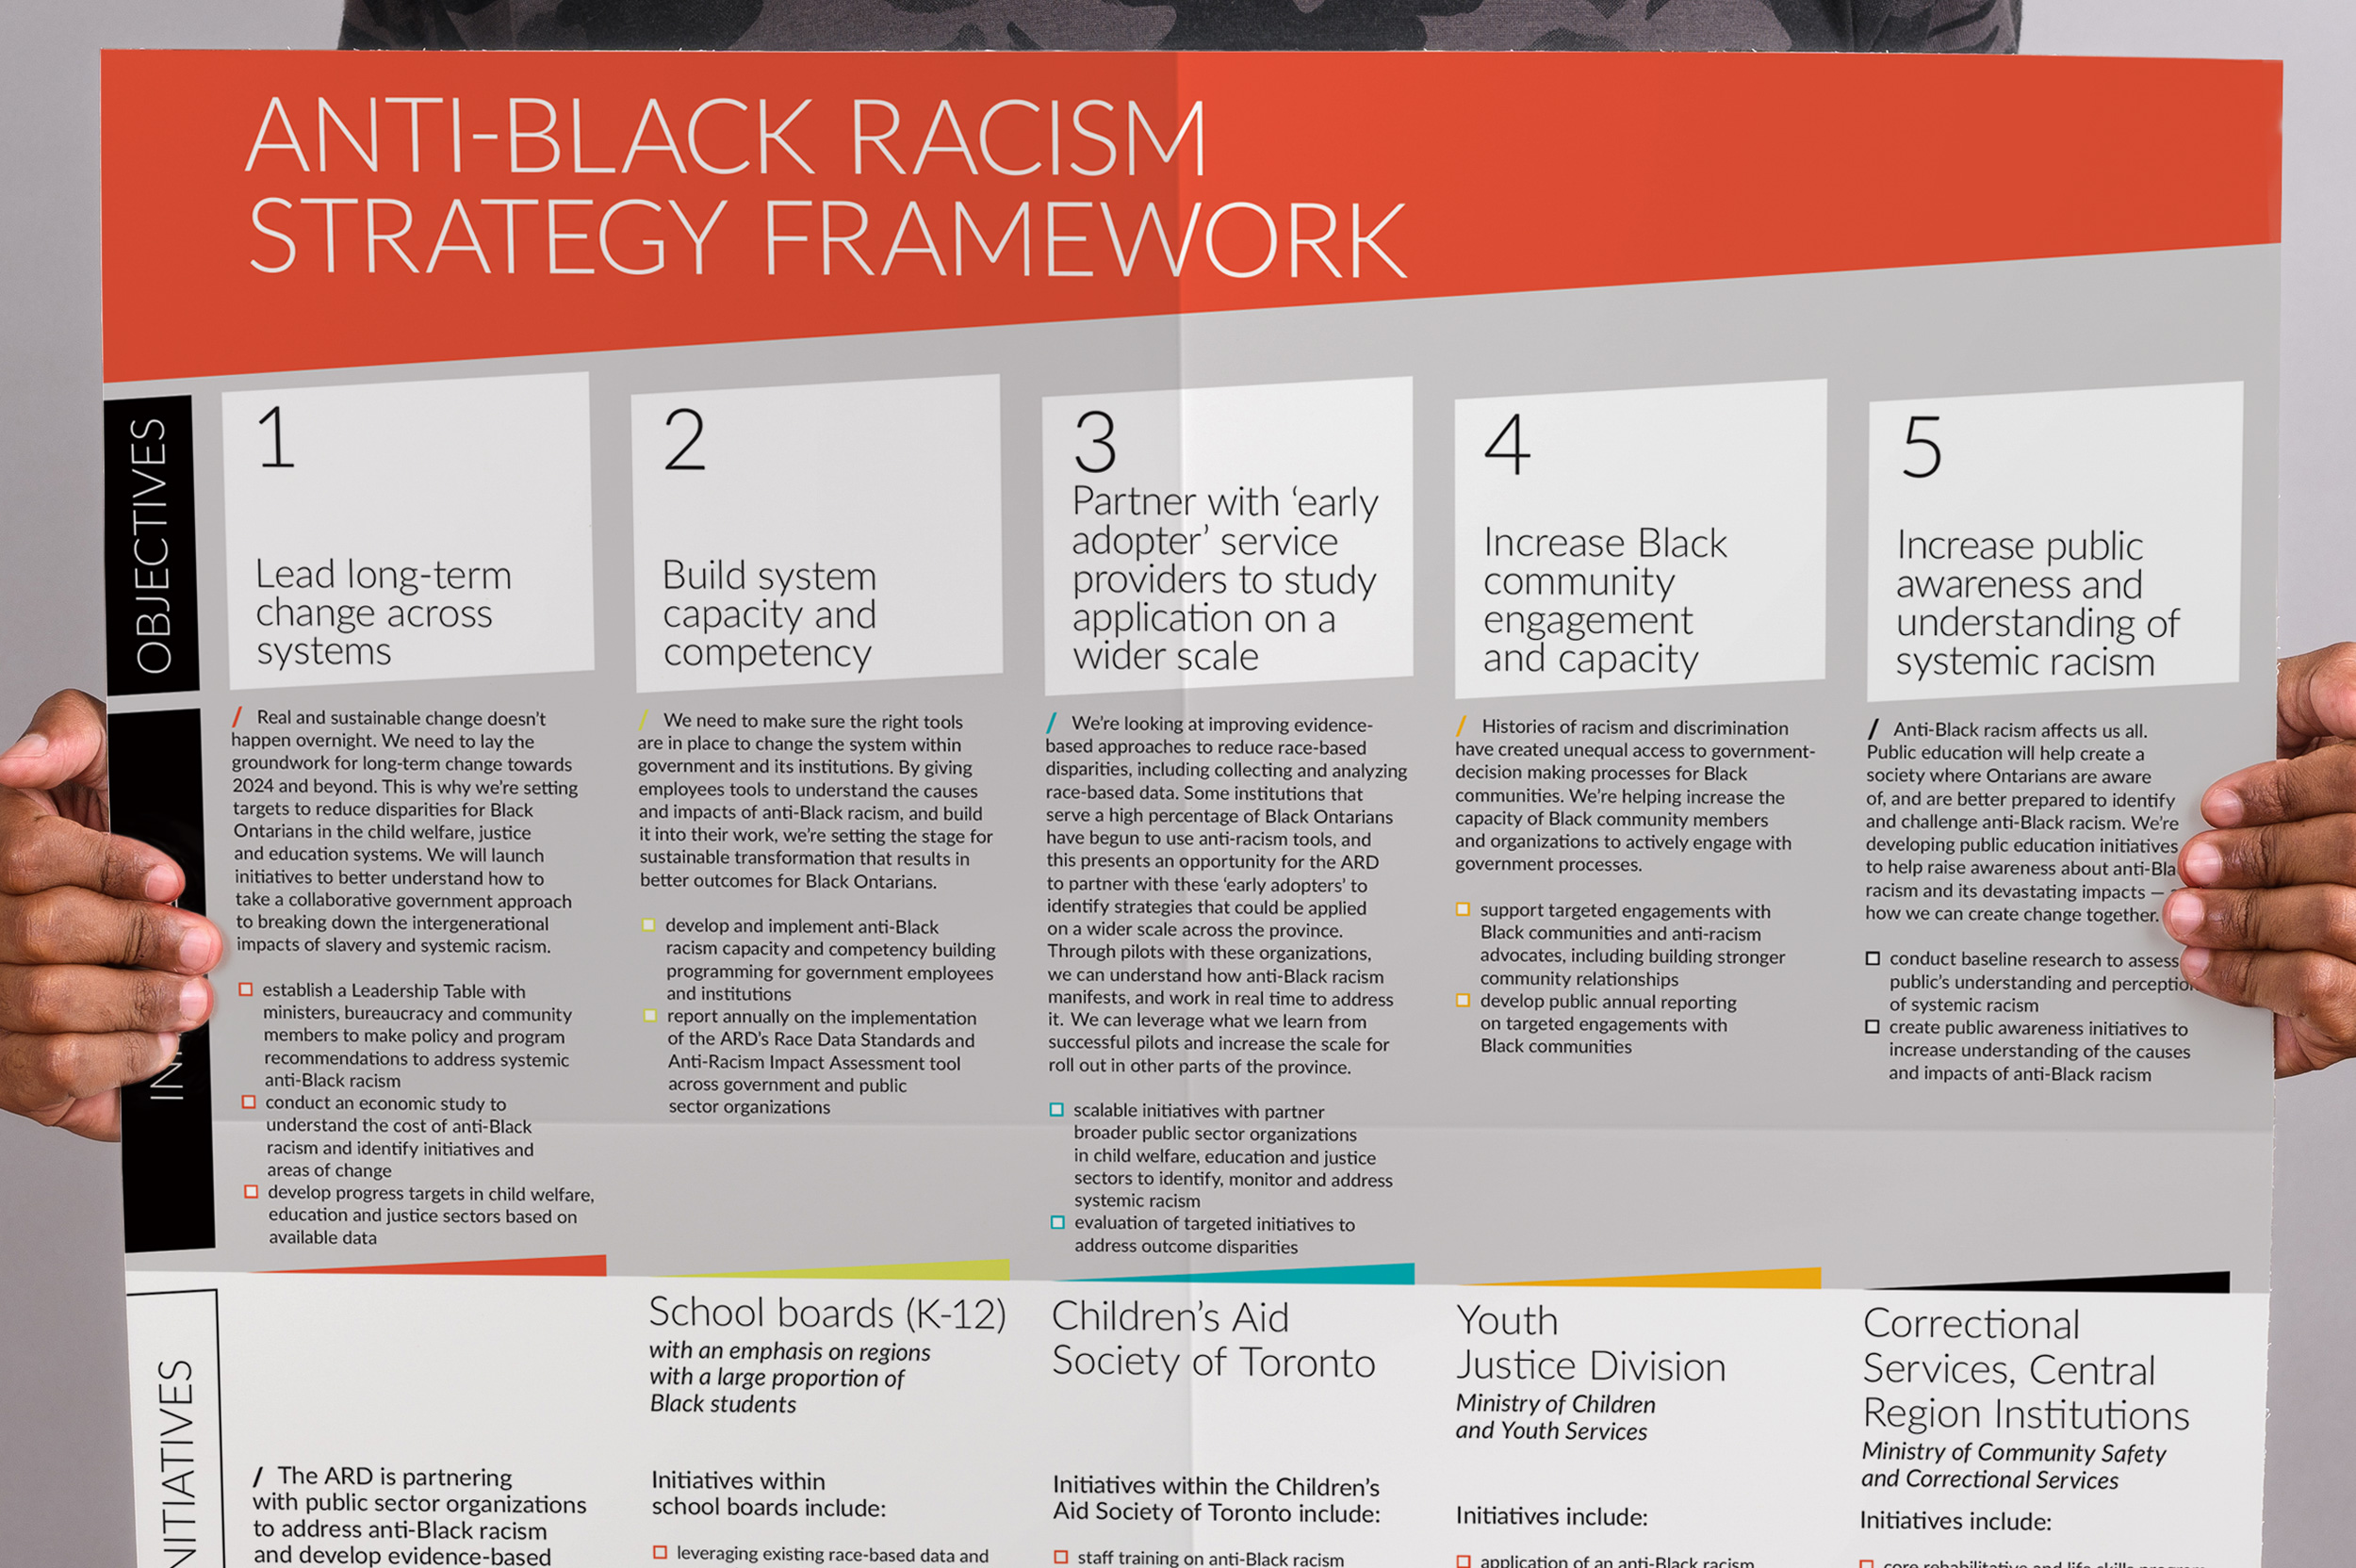 Ontario Anti-Racism Directorate - A Better Way Forward